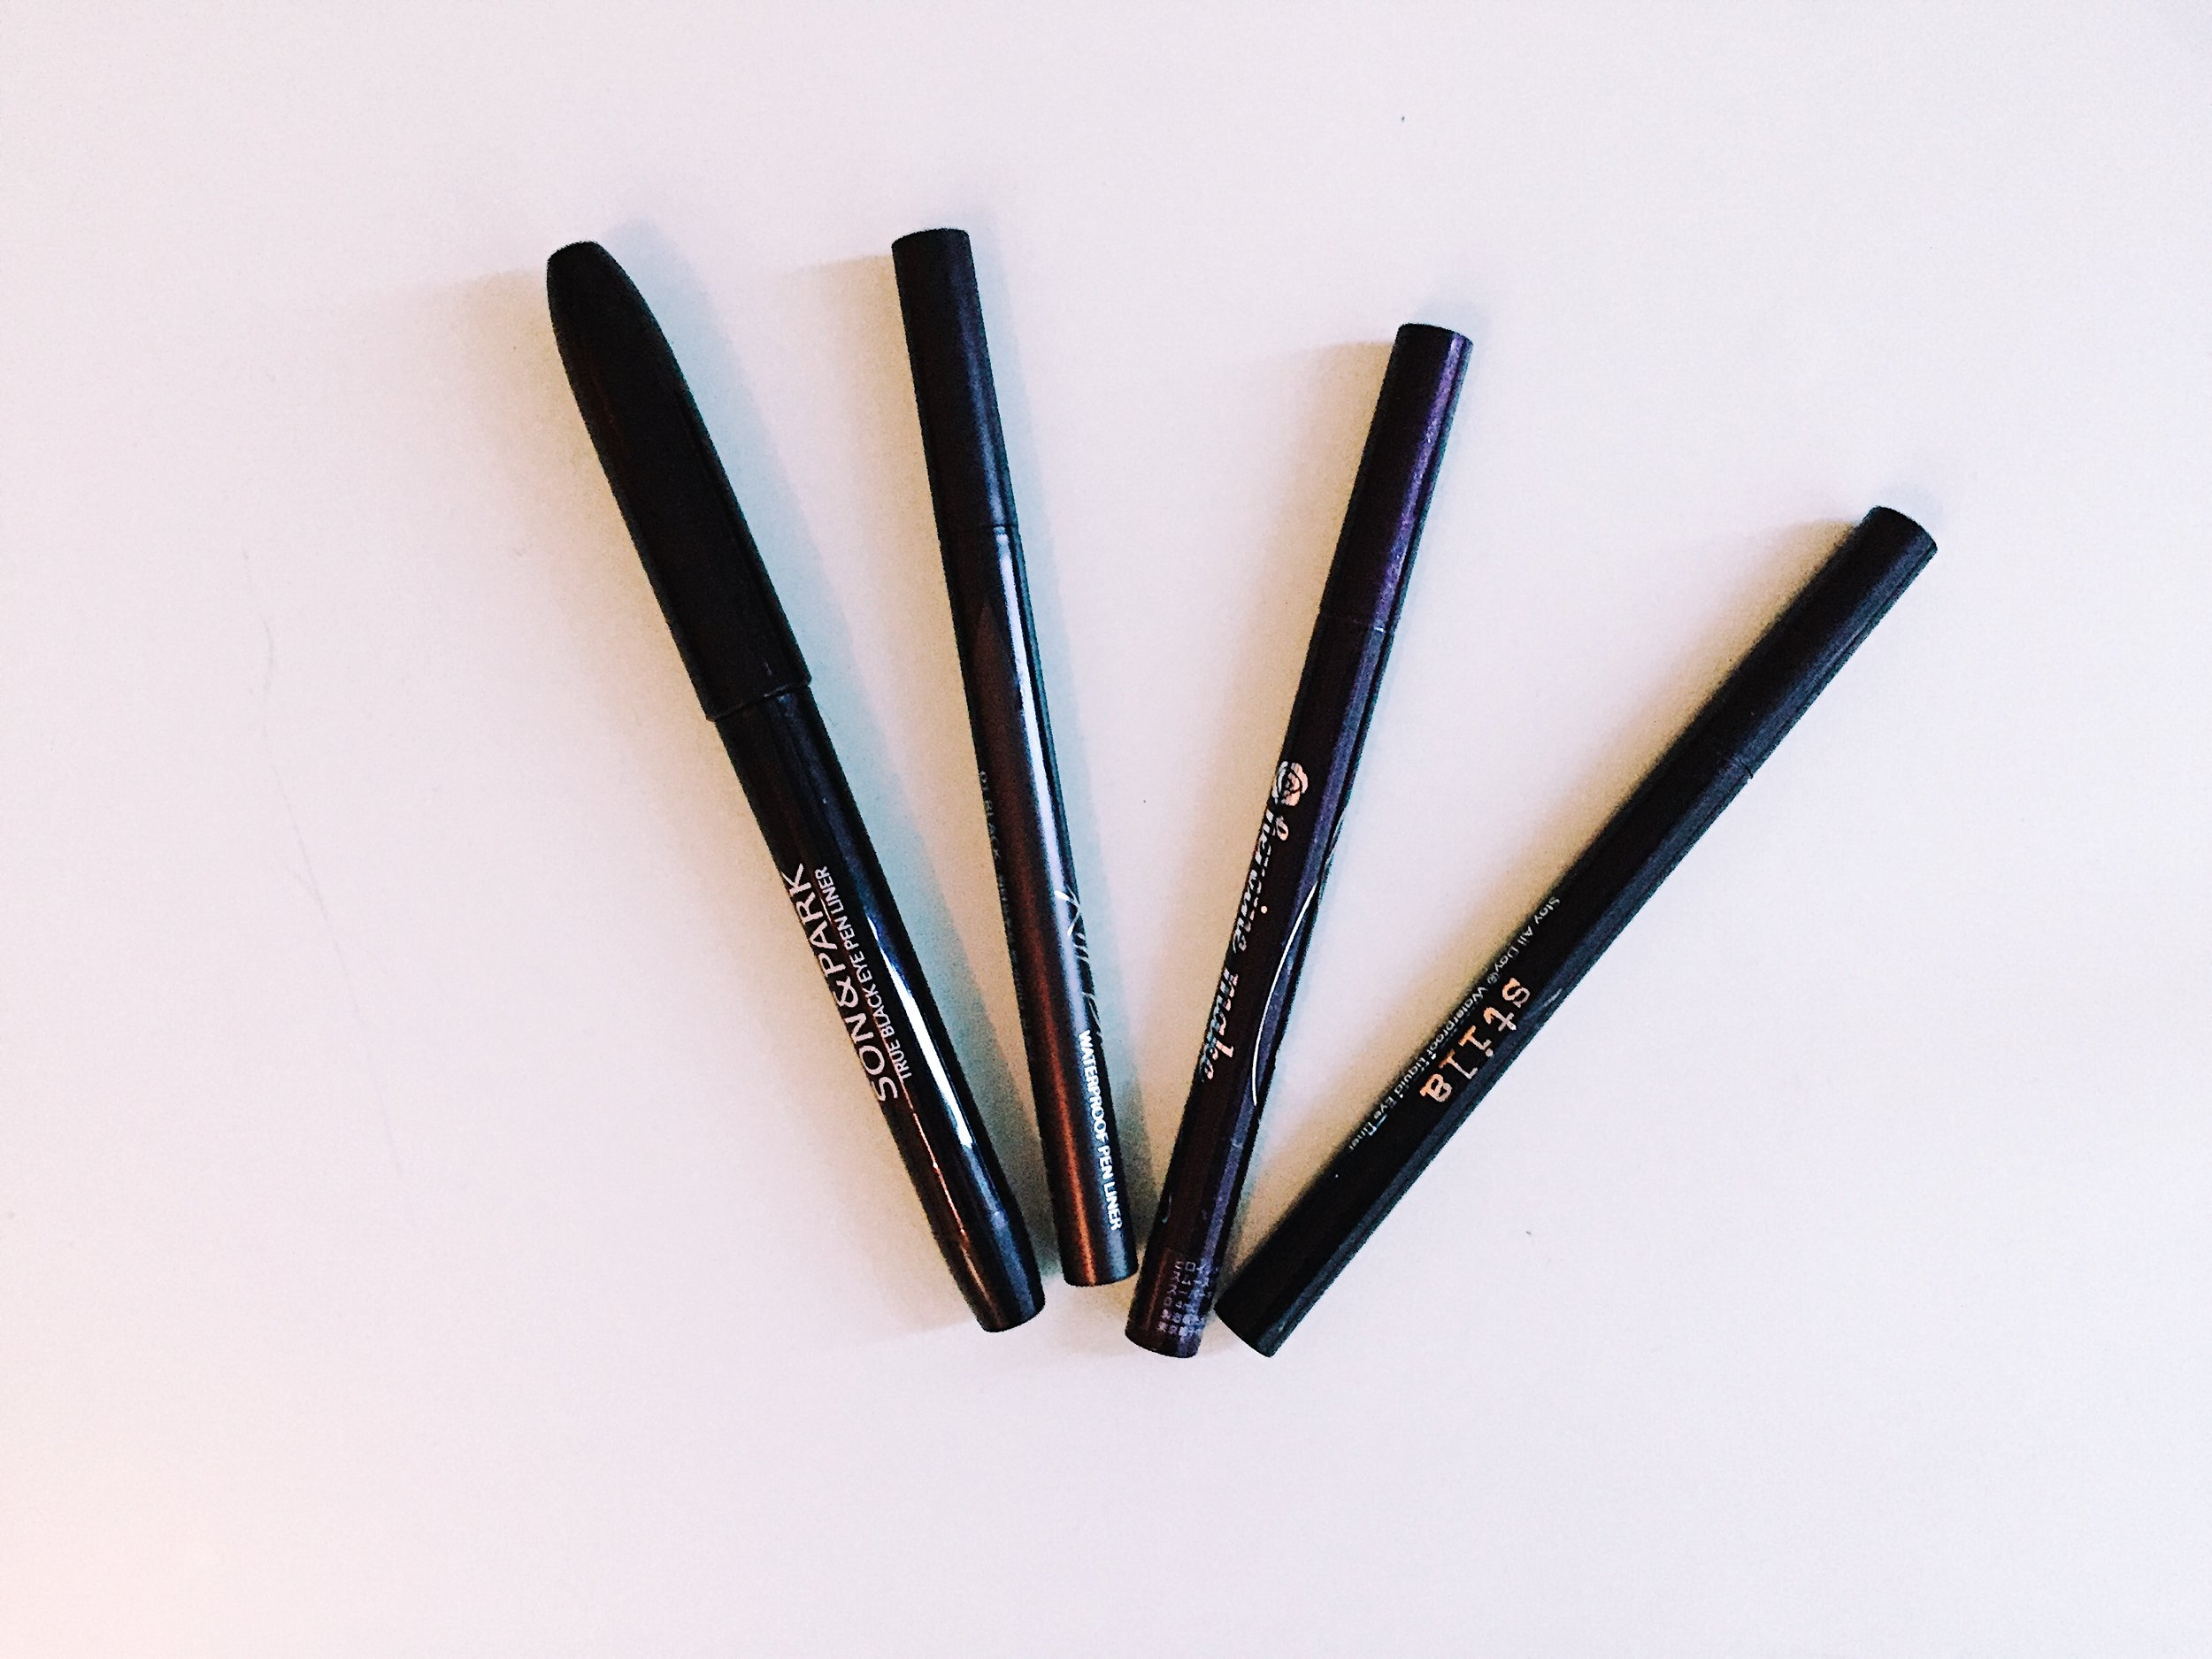 Battle of the Black Eyeliners